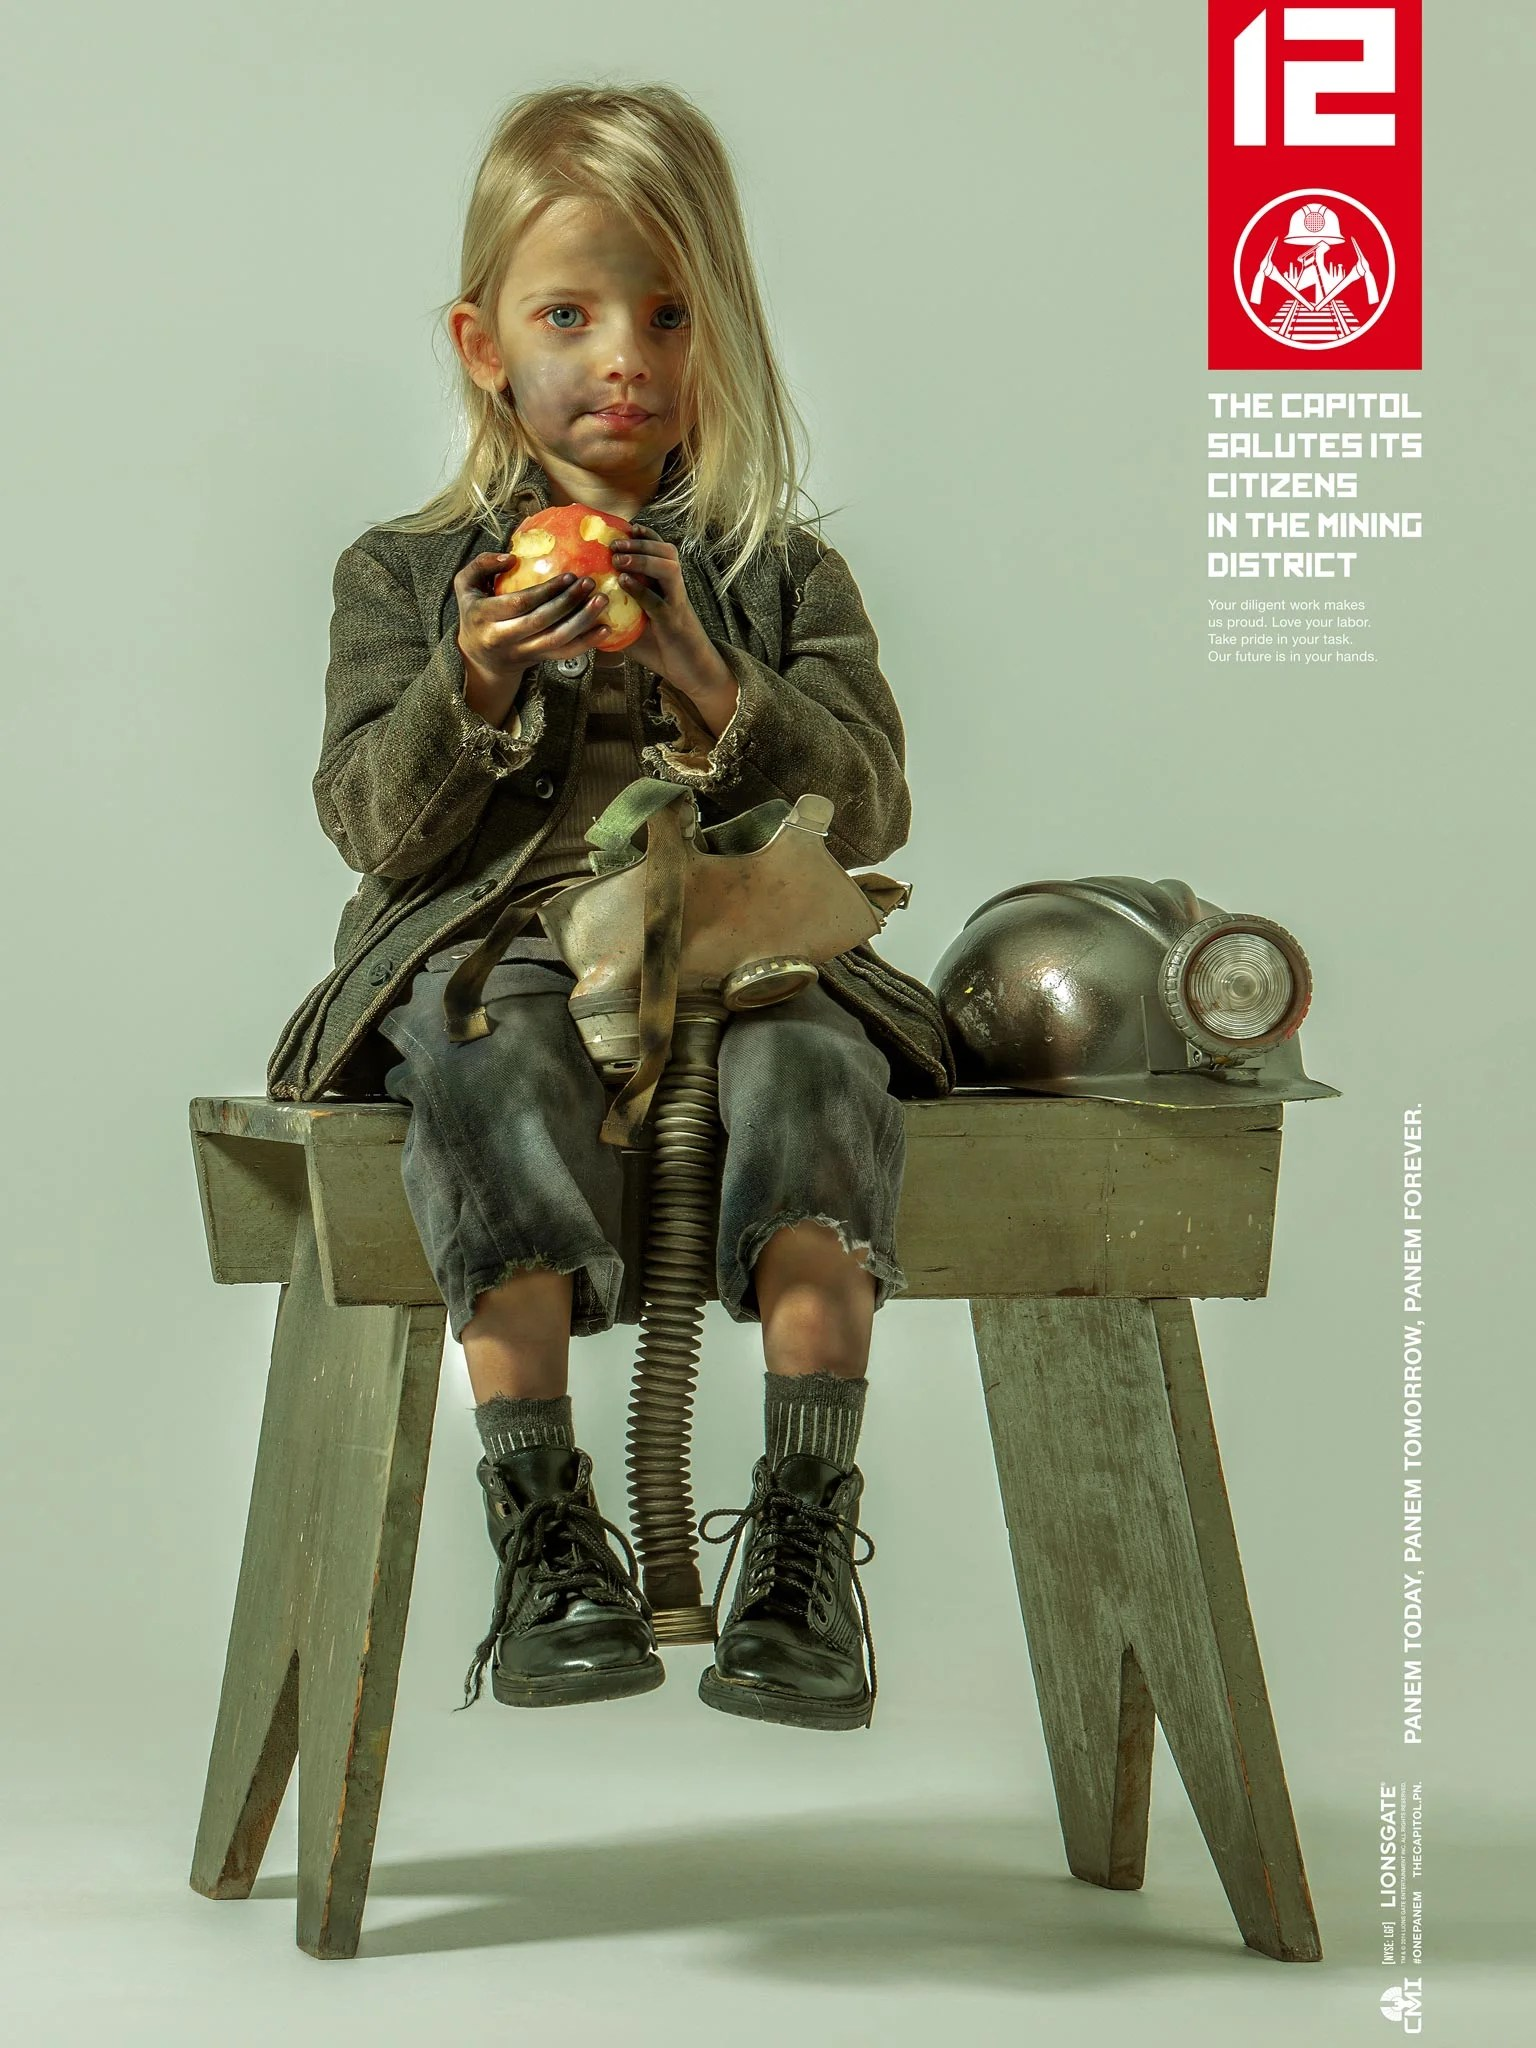 hunger games posters released